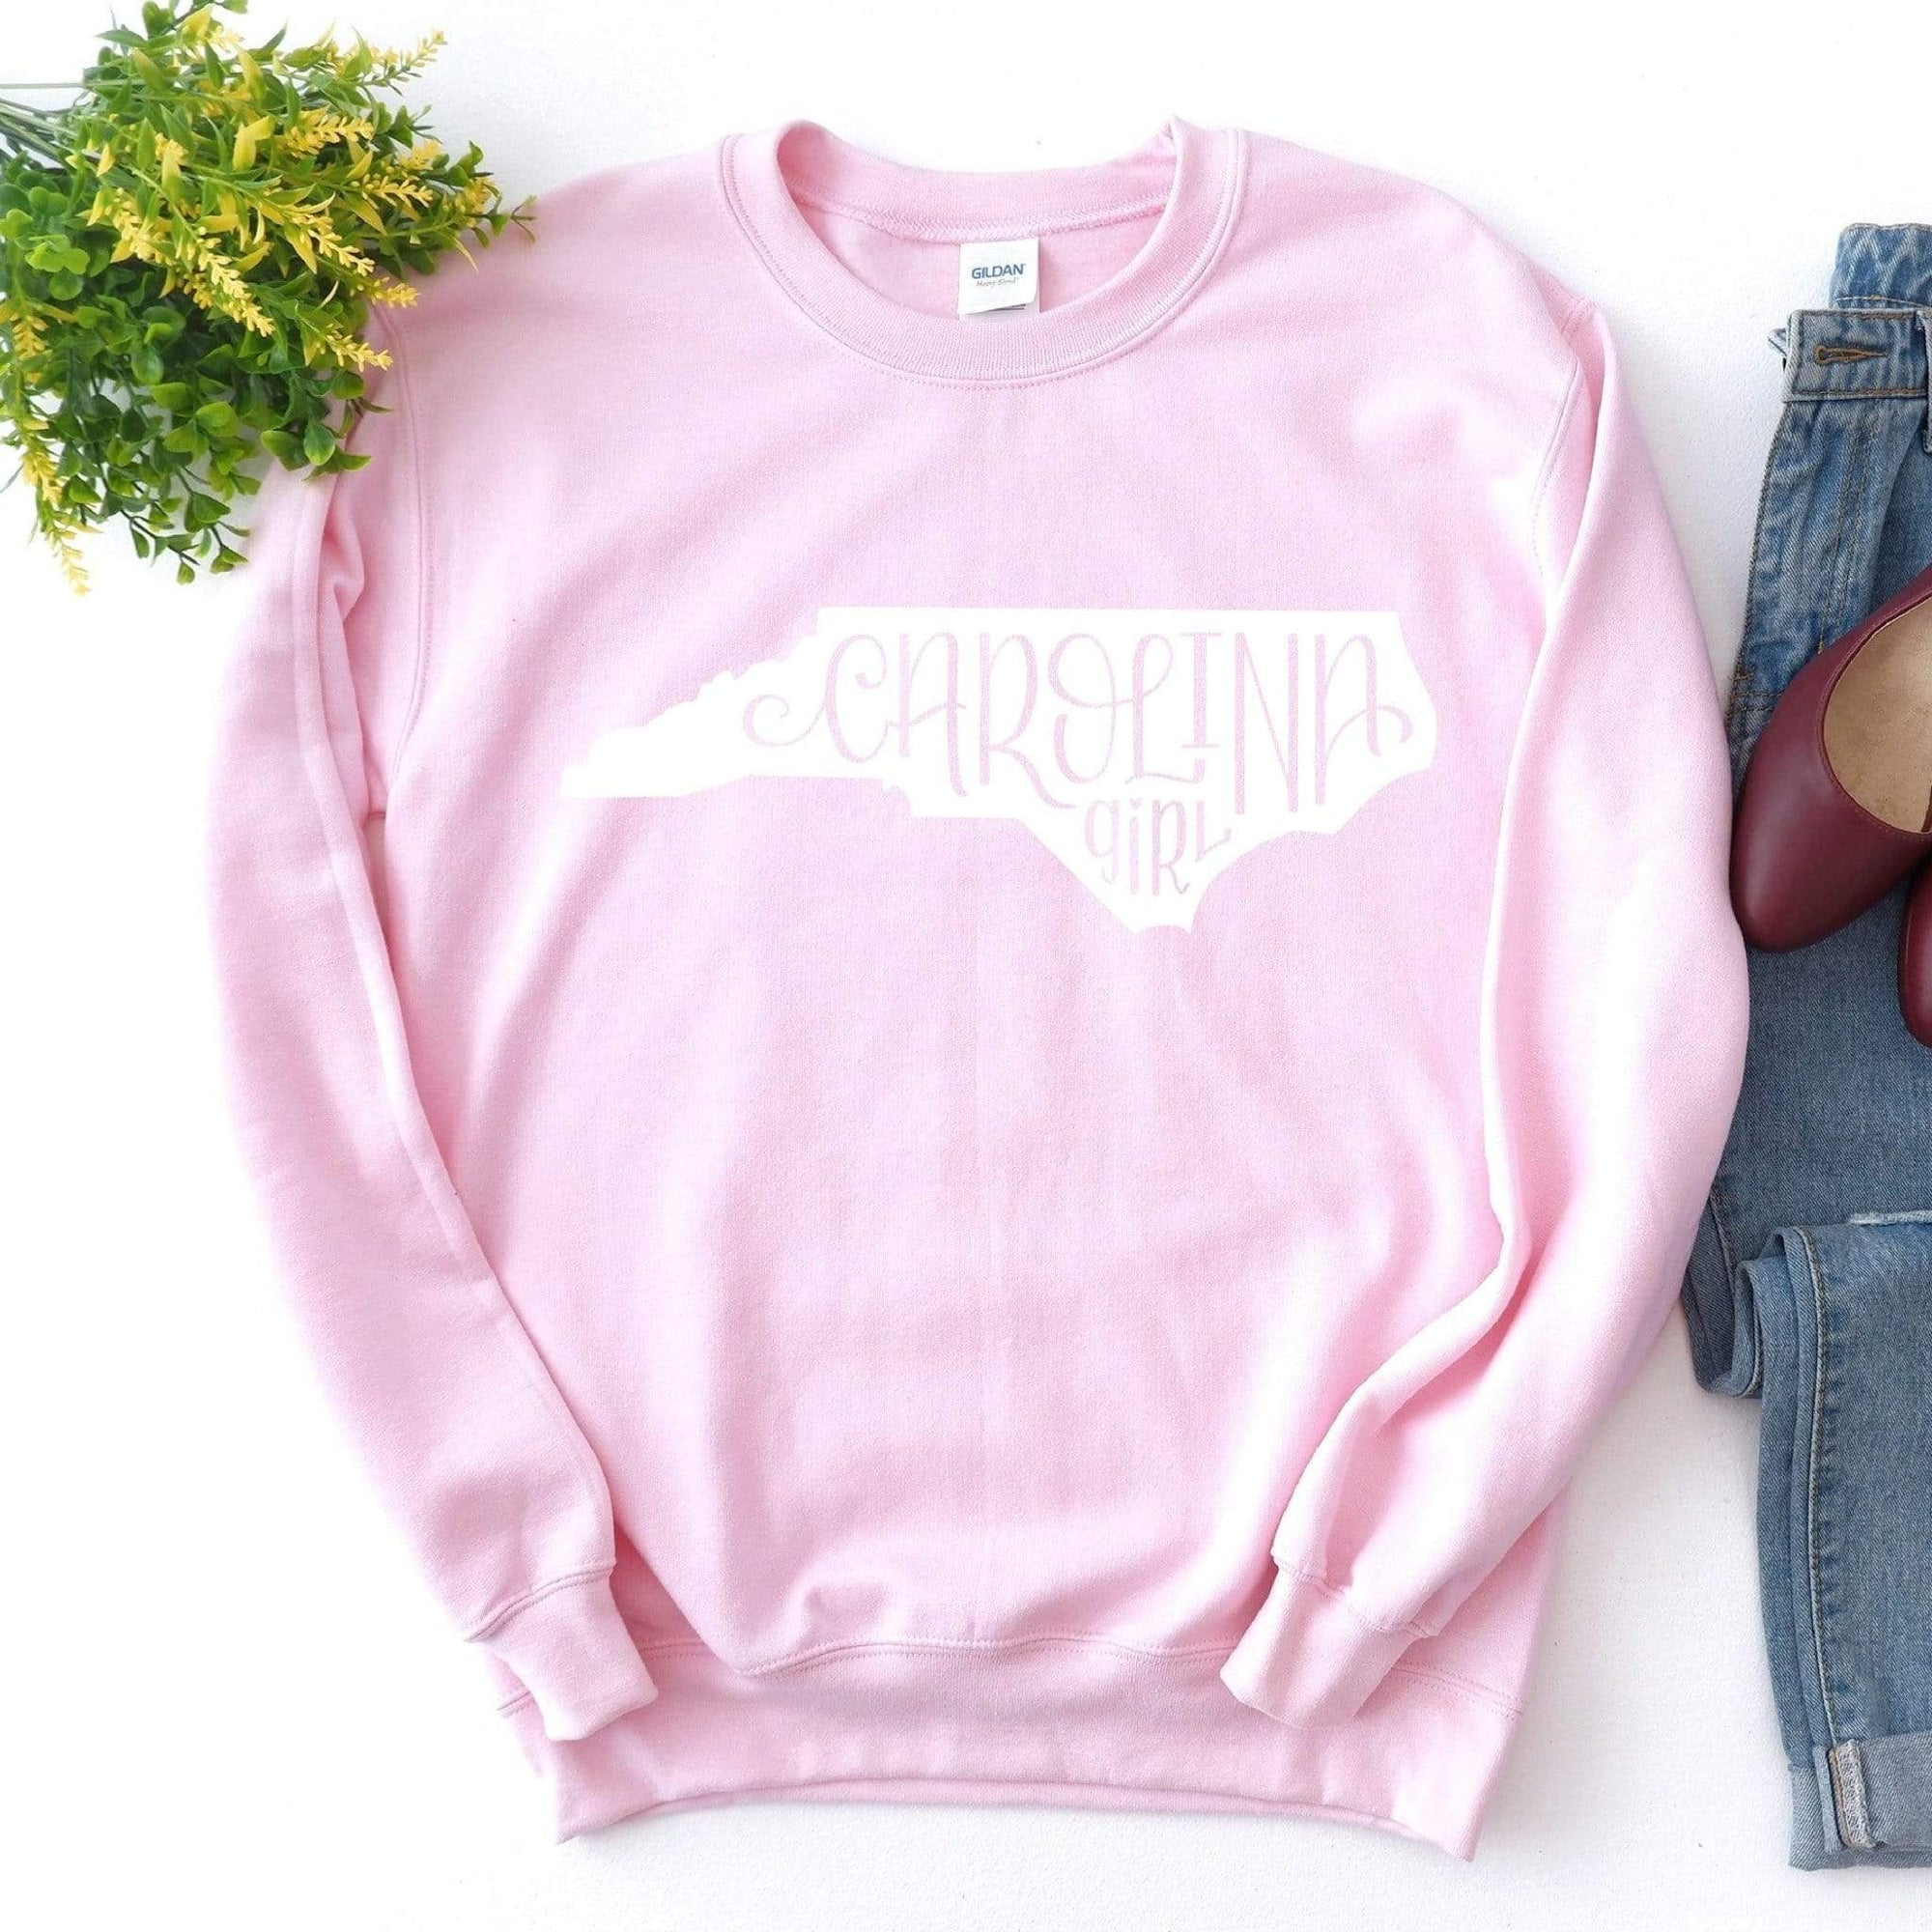 Leanne & Co. Sweatshirt Carolina Girl Unisex Sweatshirt